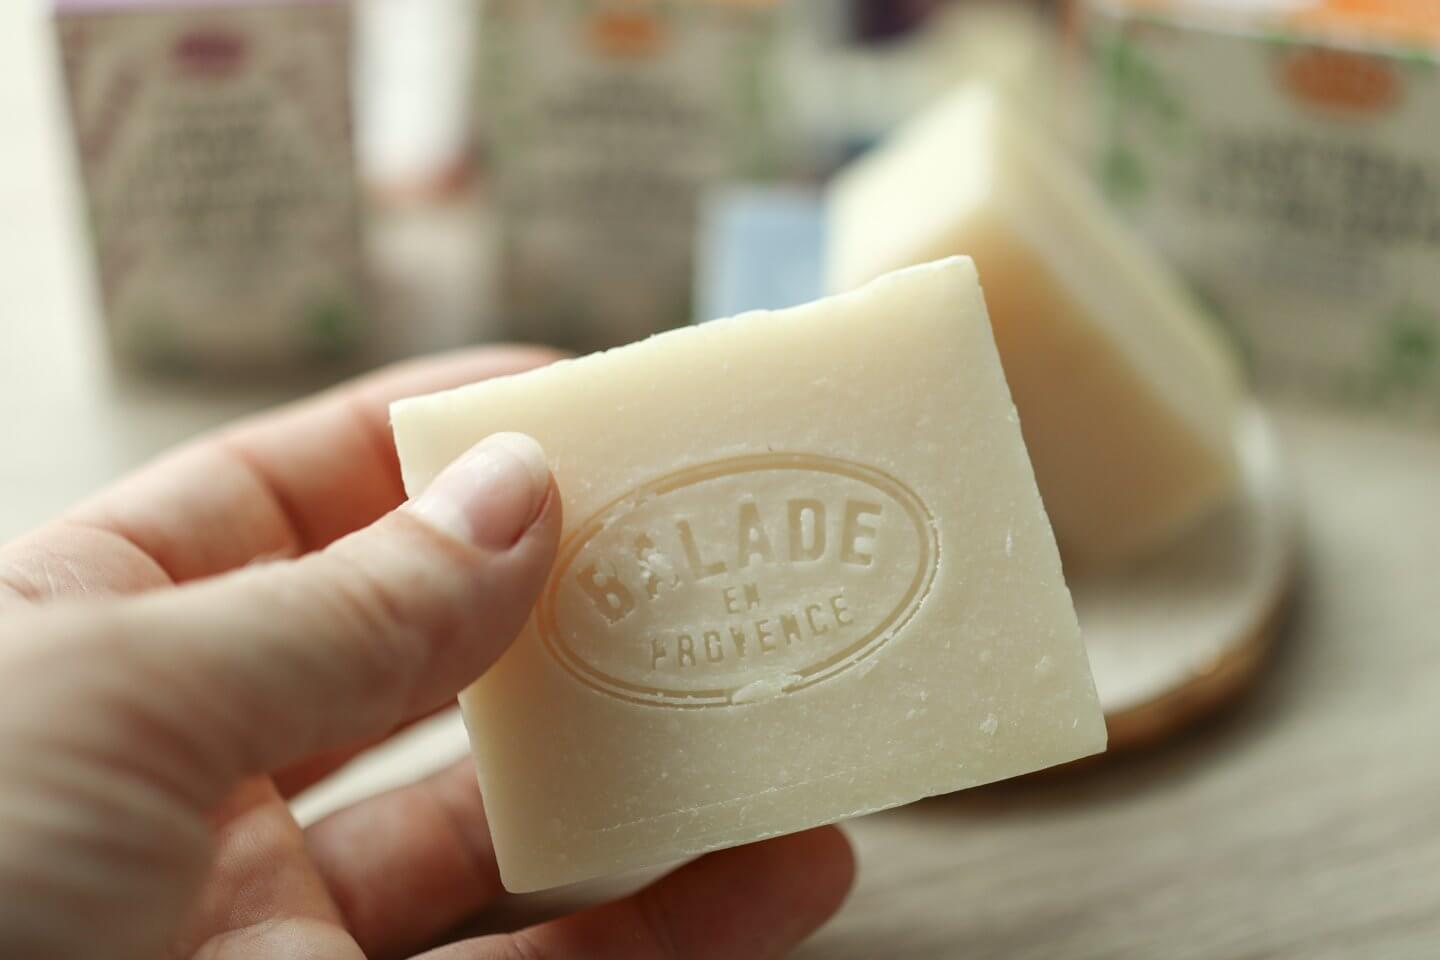 New Vegan Organic Solid Body Soap Bars from Balade en Provance